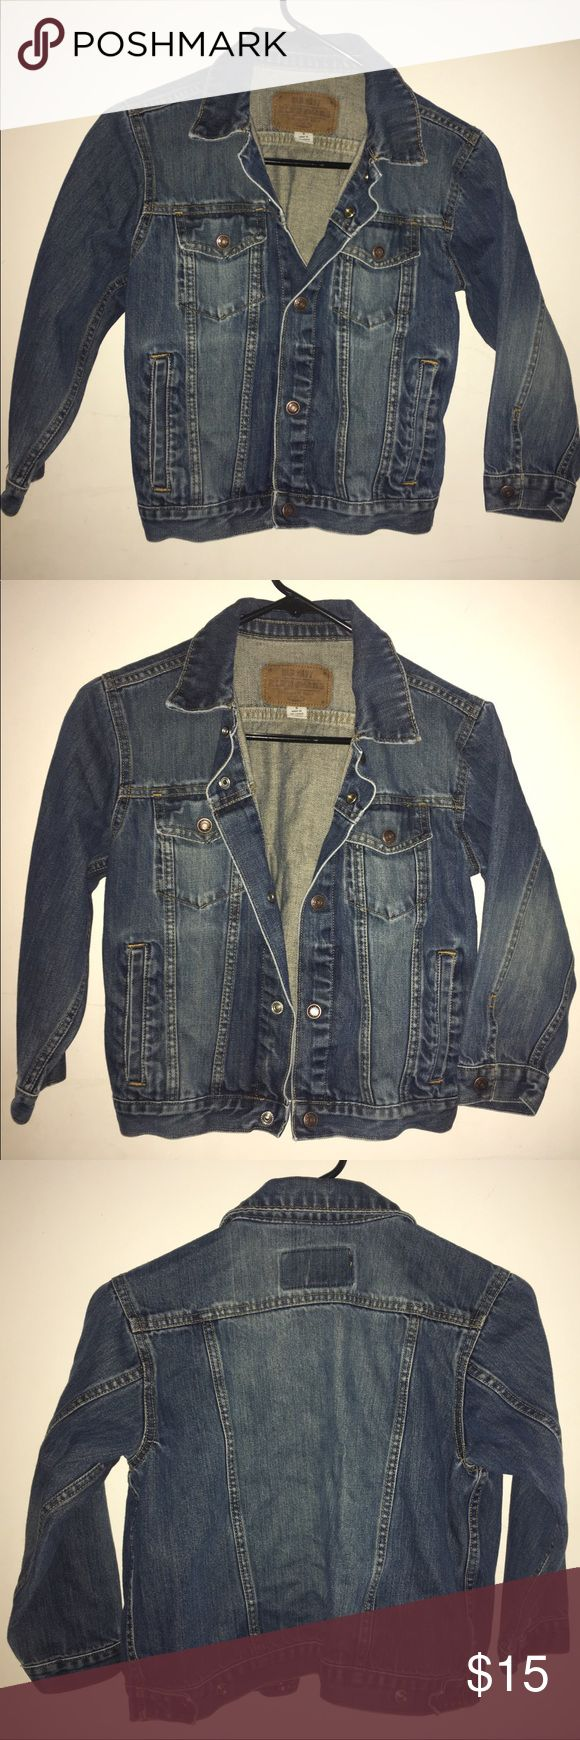 Child OLD NAVY Jean Jacket Denim Girl Boy Unisex Old Navy Jacket! Child Size Small in Excellent Pre-Loved Condition! See Pictures for Details & let me know if you need Measurements. Please make sure this will fit before purchasing! 🌹 Don't forget to look at my other items! 💕Bundle & $ave💕 If over 5 lbs, Extra Shipping Fees Apply. Contact me 1st & I can let you know the weight of your bundle 😄 Old Navy Jackets & Coats Jean Jackets